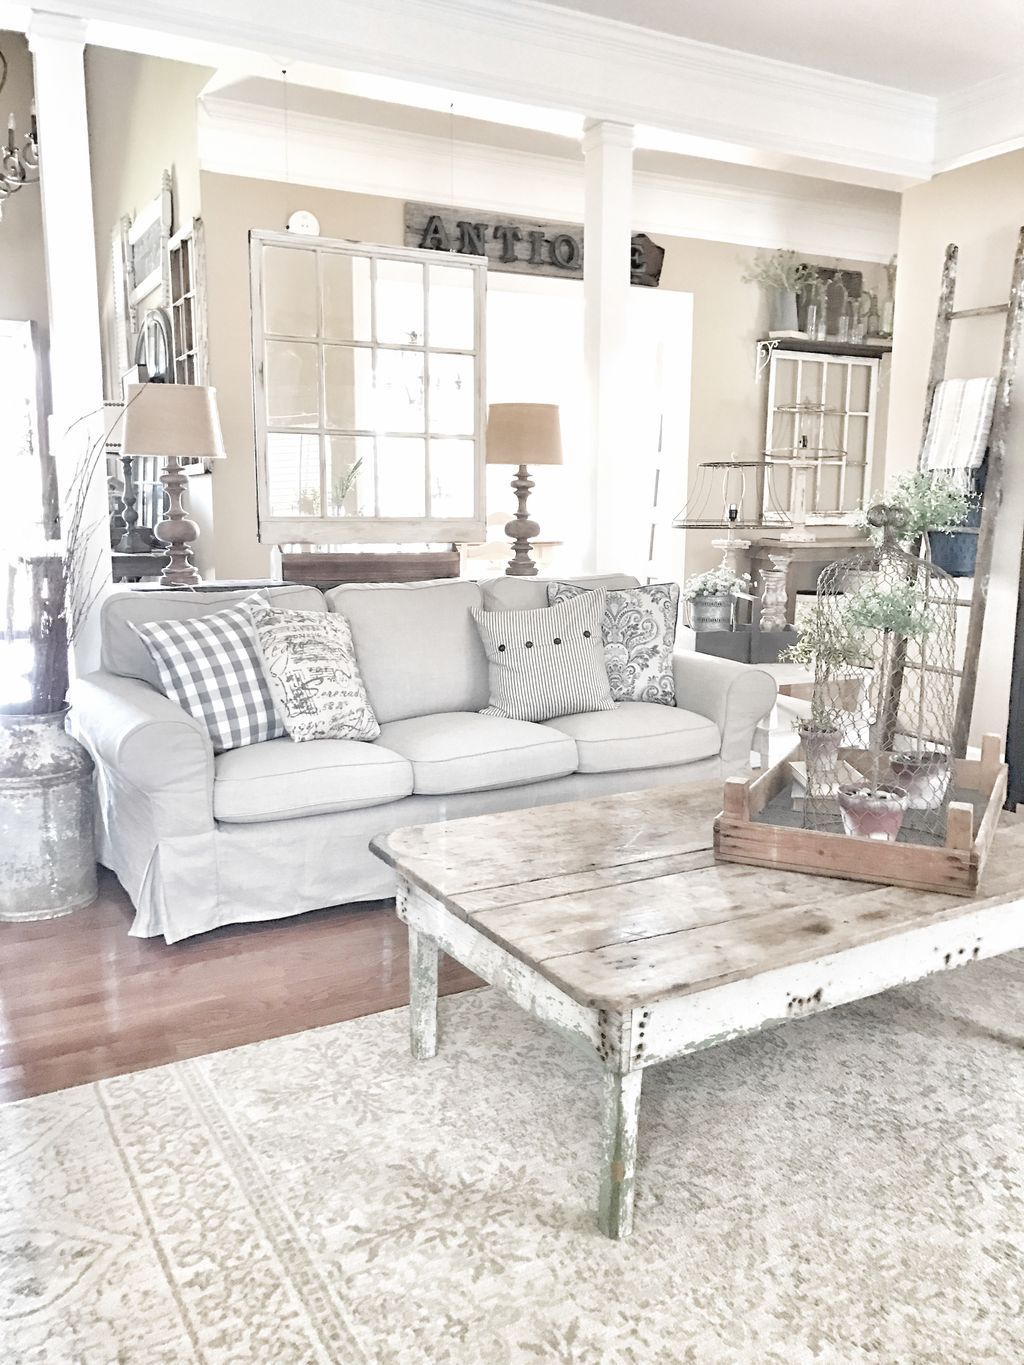 Deco Salon Shabby Chic Beautiful White Shabby Chic Living Room Decoration Ideas